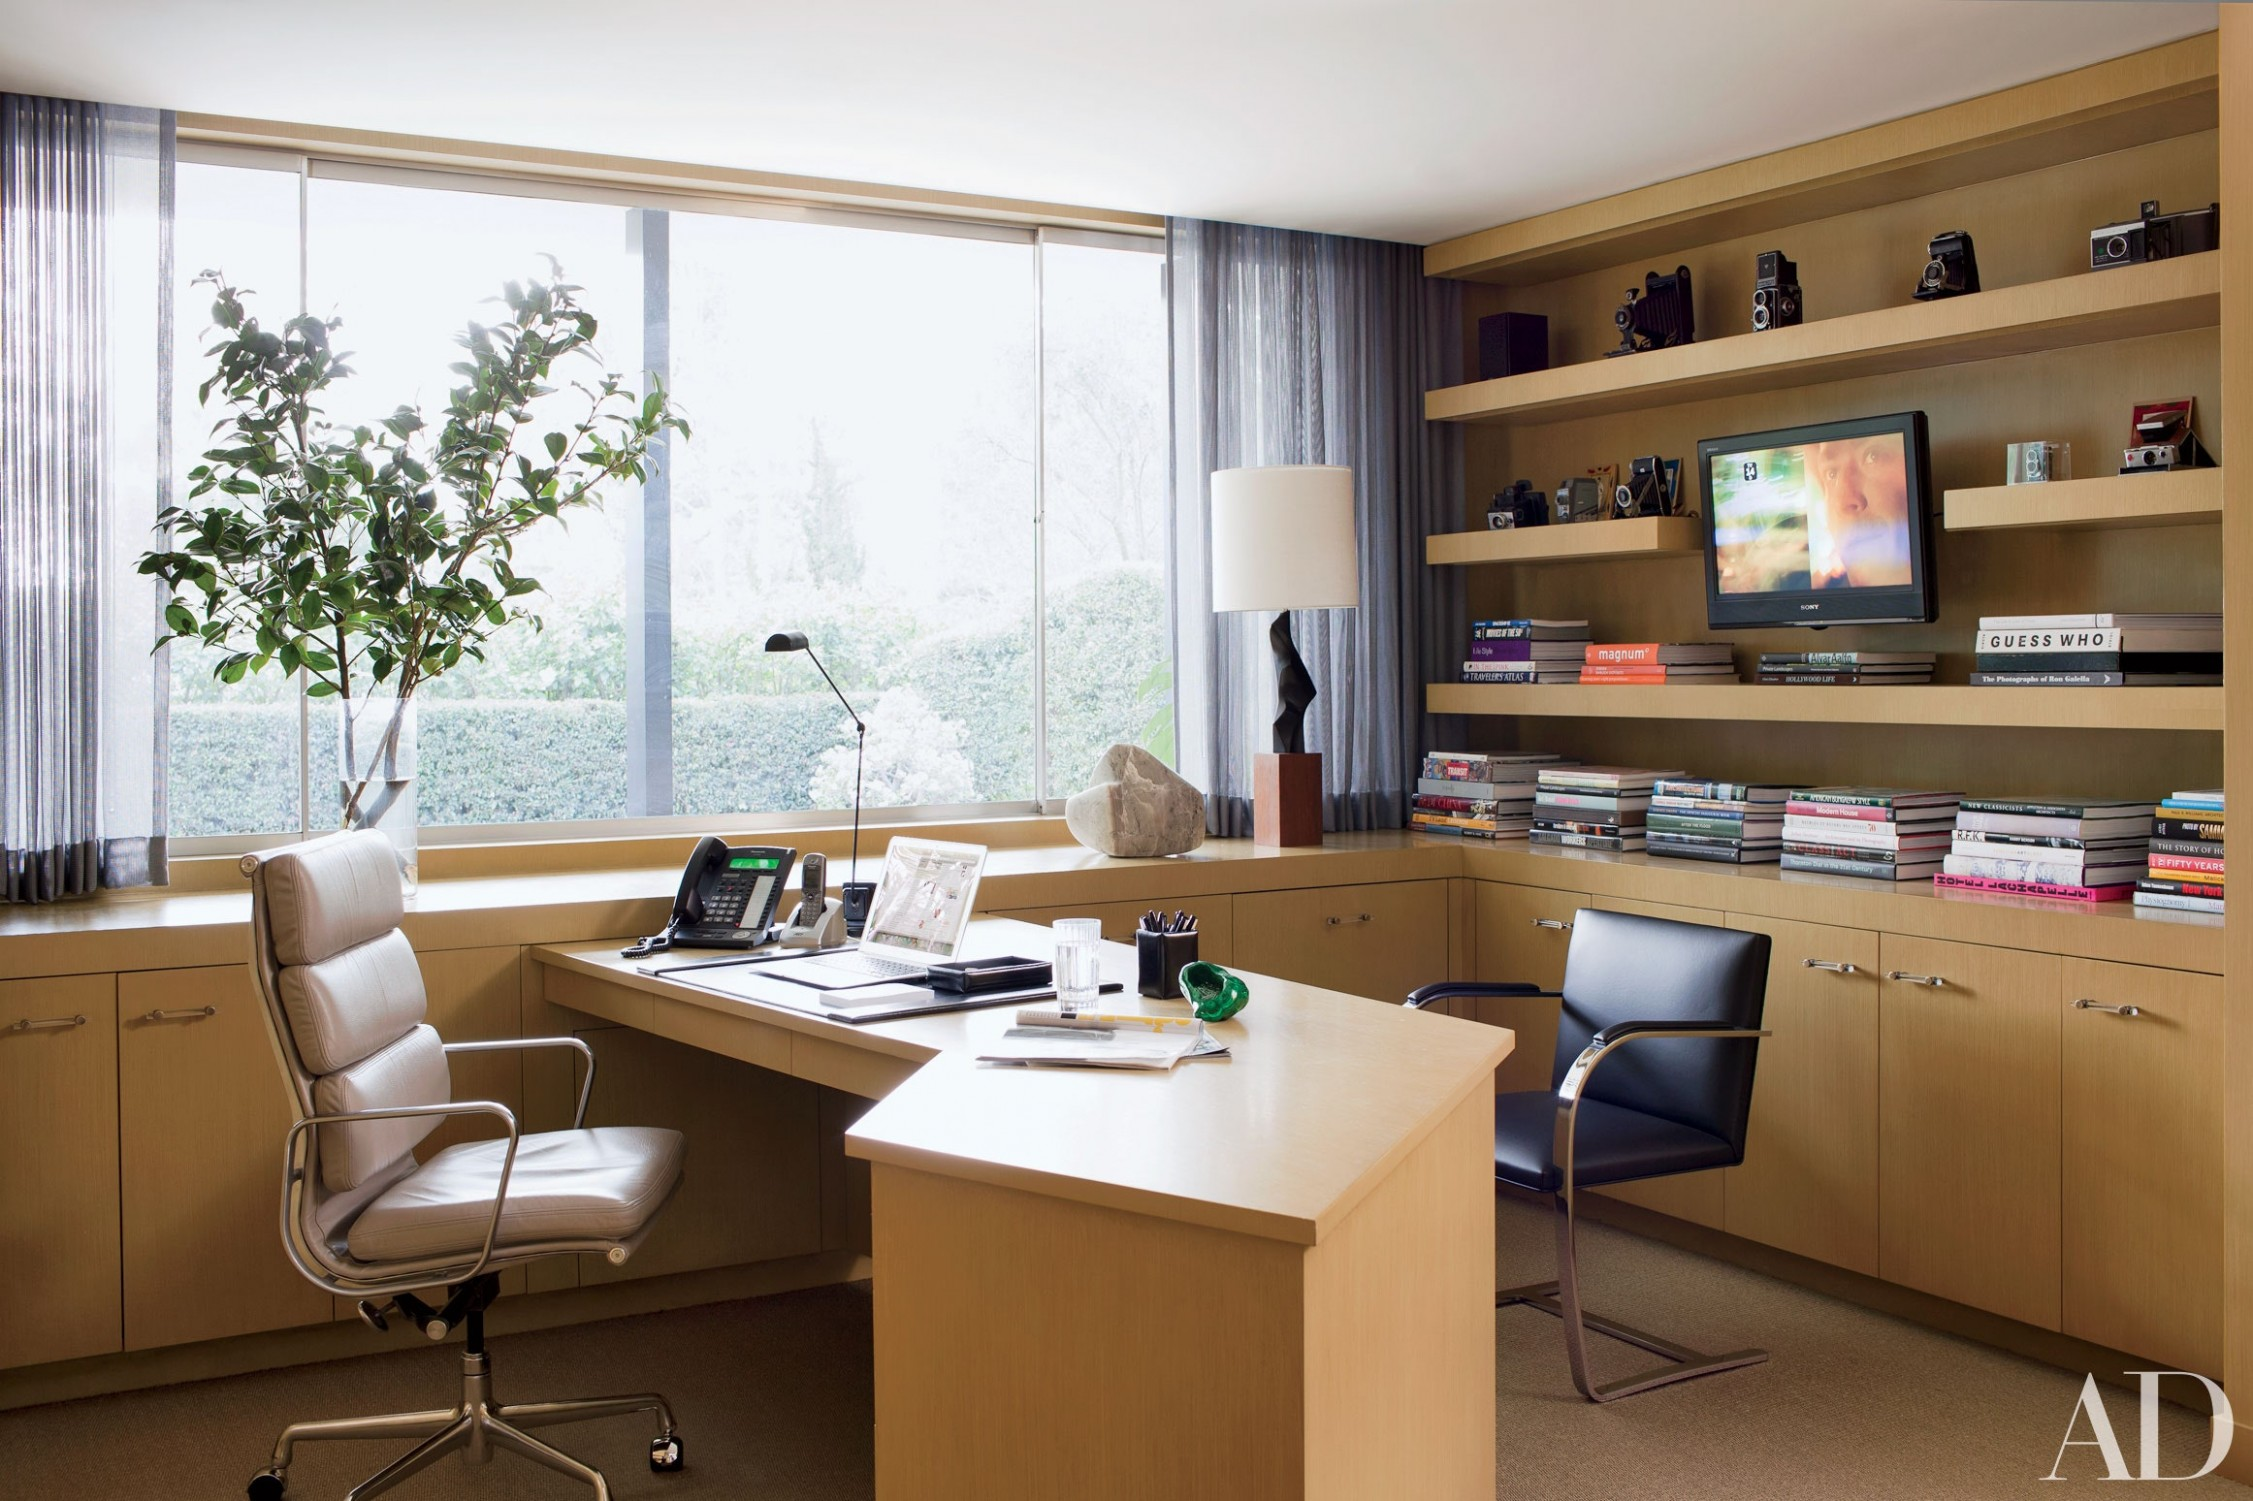 11 Home Office Ideas That Will Inspire Productivity  - Home Office Ideas Square Room